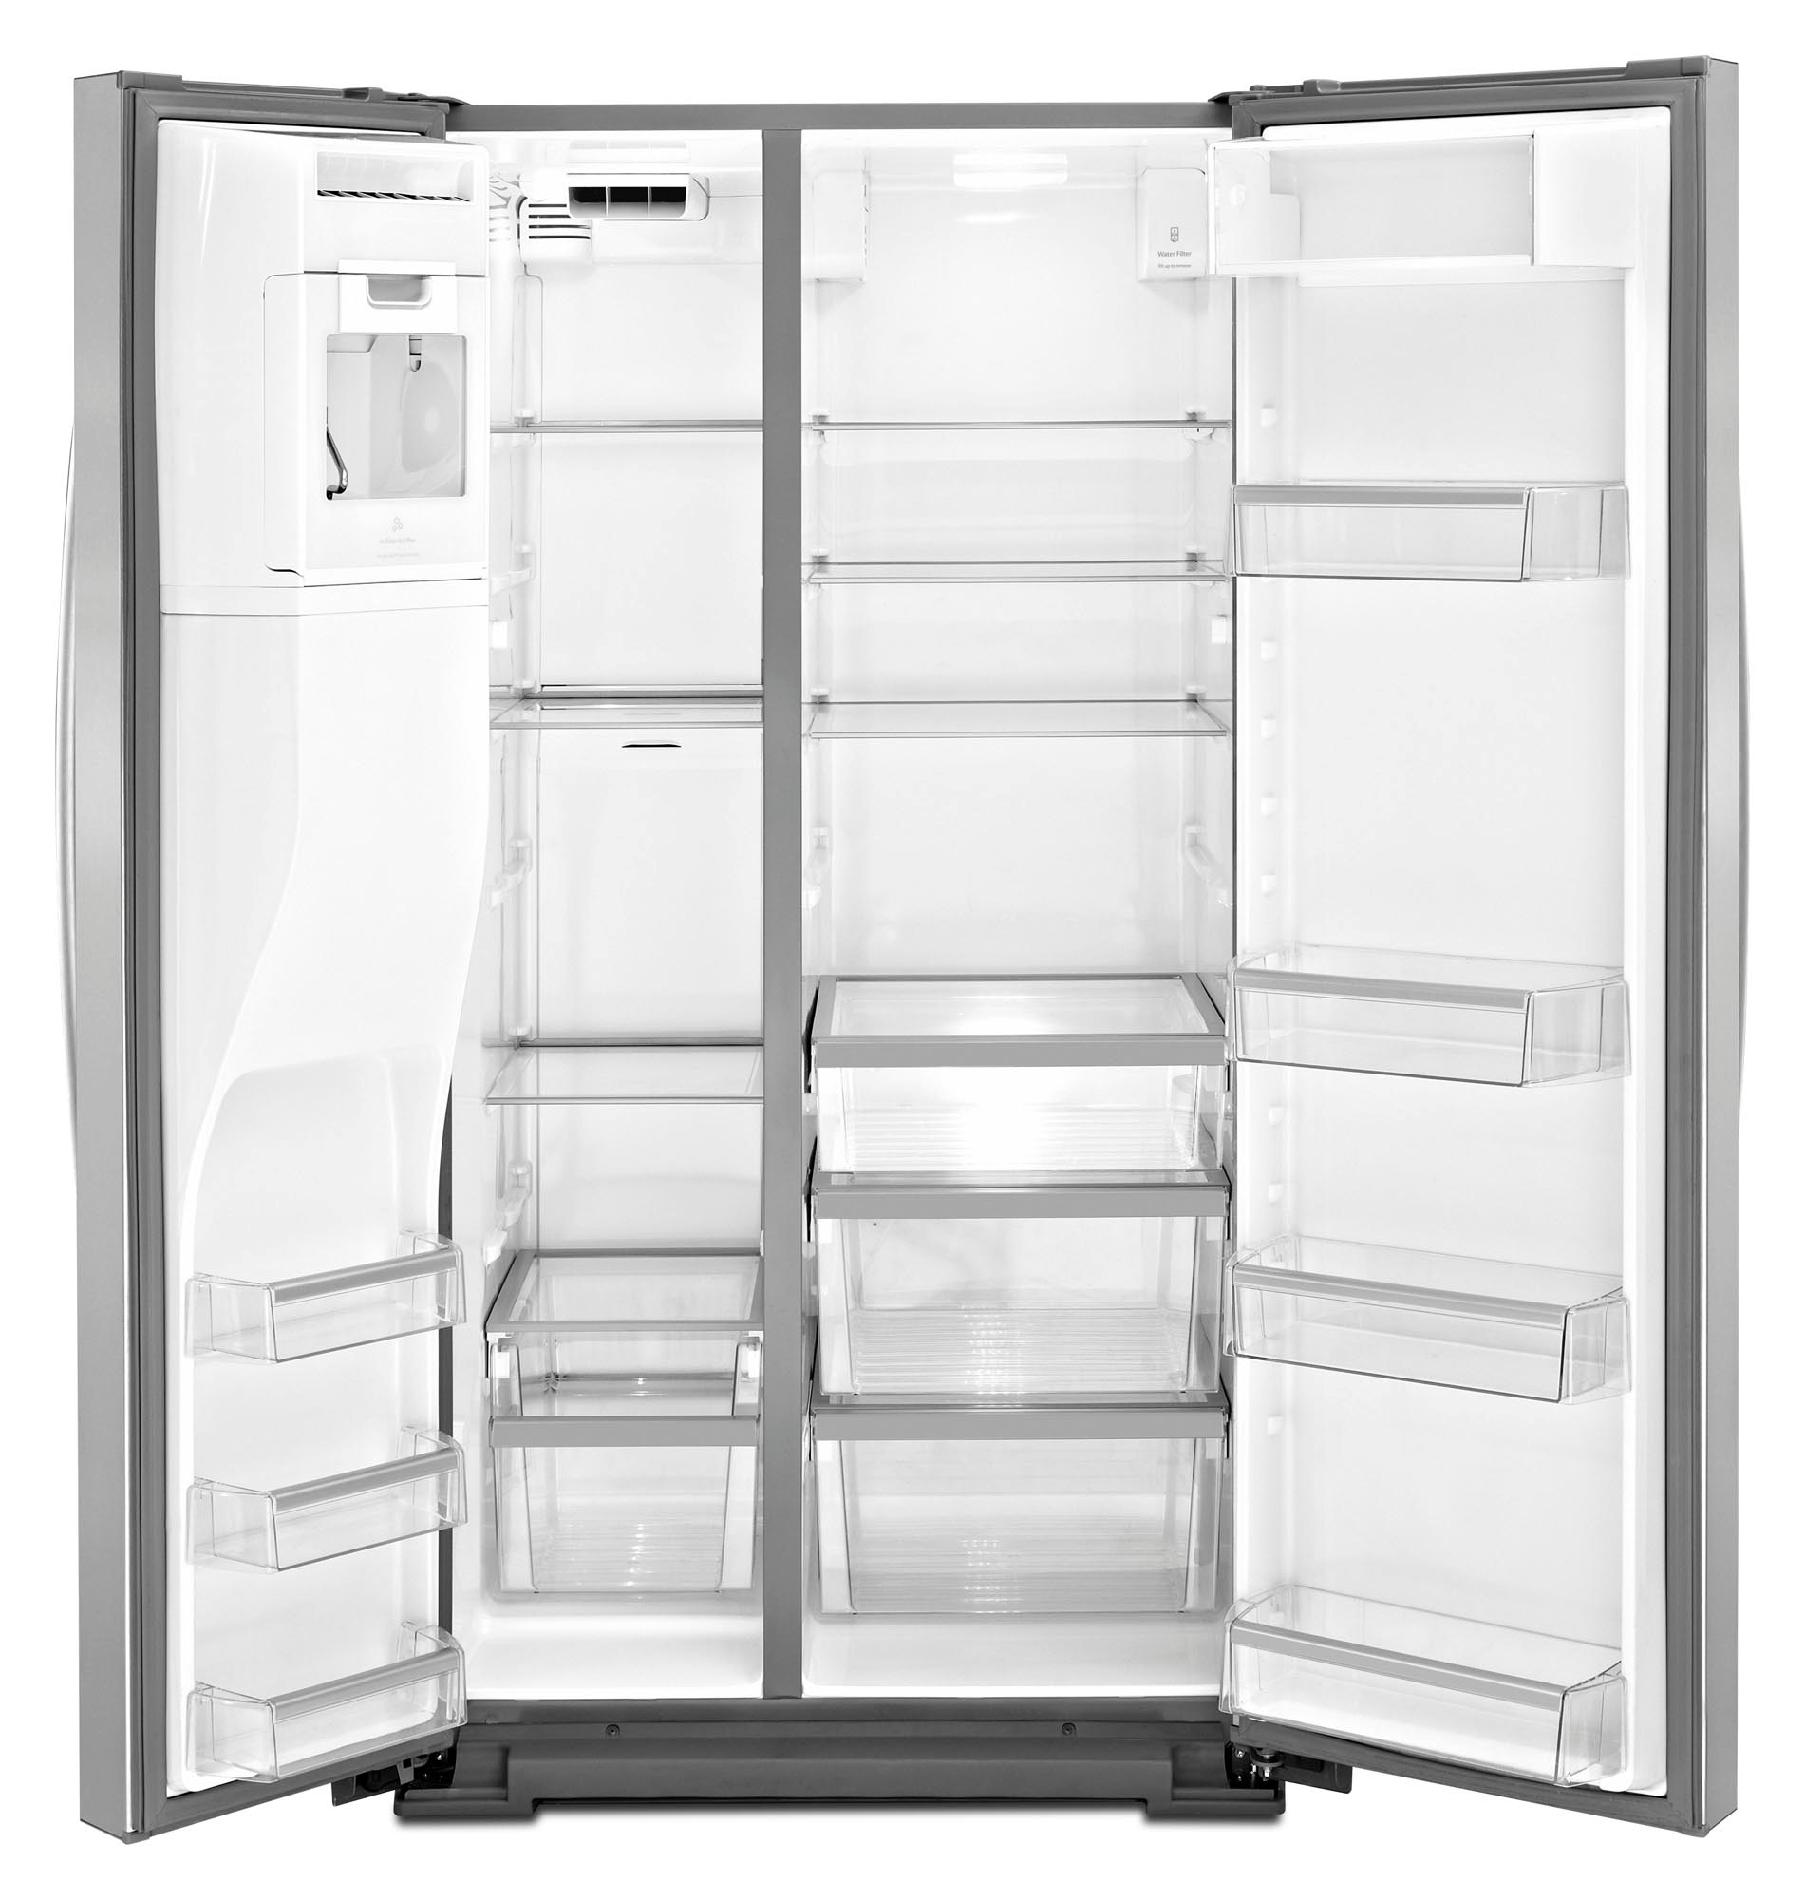 Whirlpool 26.5 cu. ft. Side-by-Side Refrigerator w/ Measured Fill - Stainless Steel